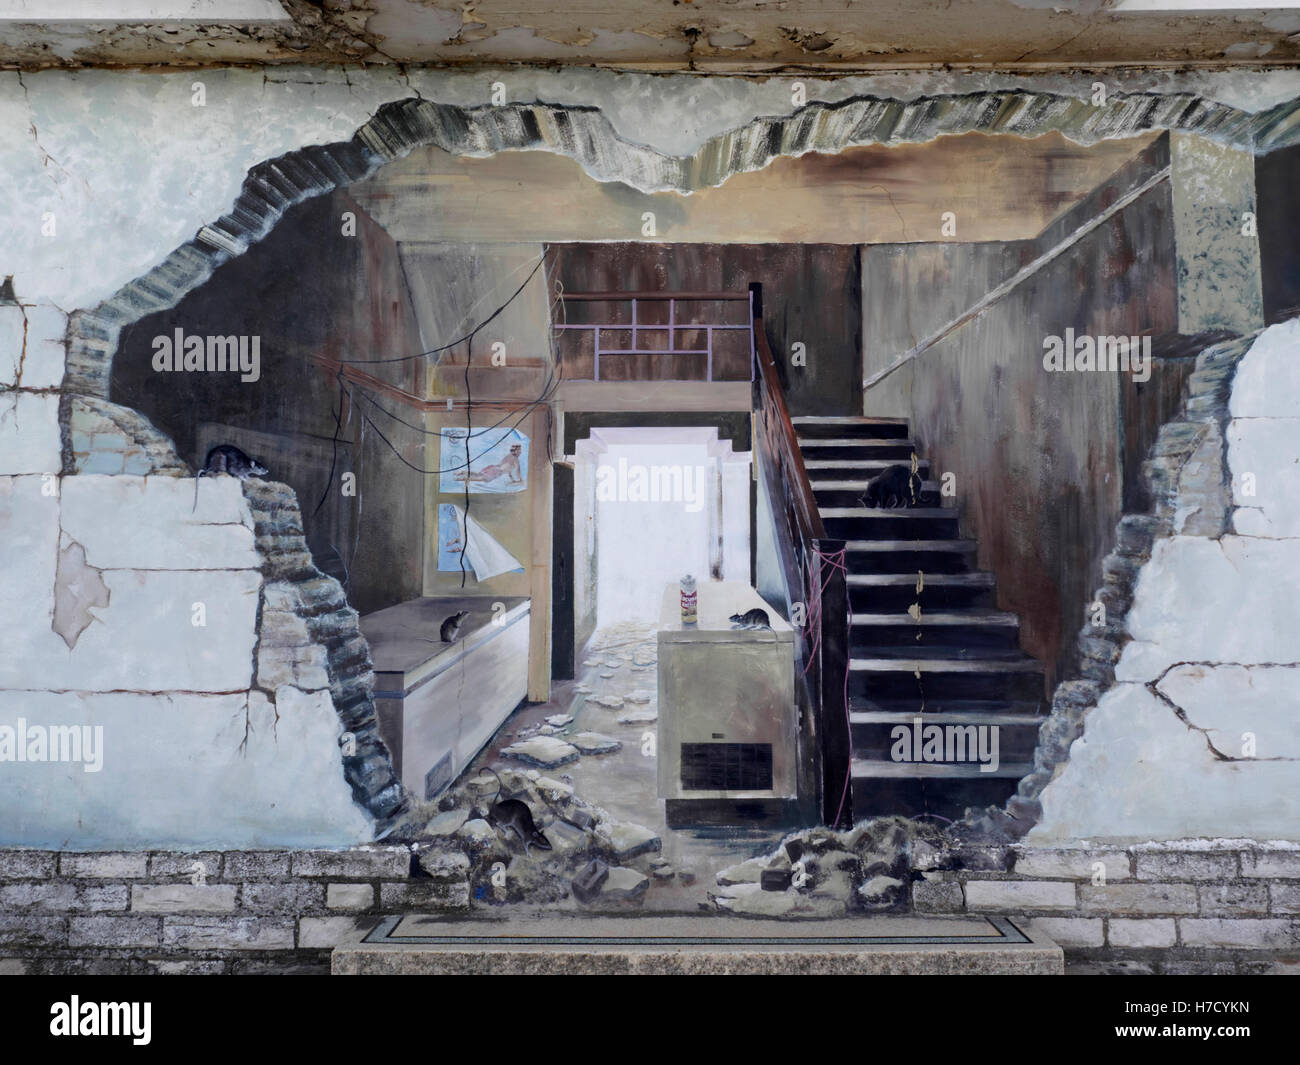 street art on wall of condemned building producing a. Black Bedroom Furniture Sets. Home Design Ideas